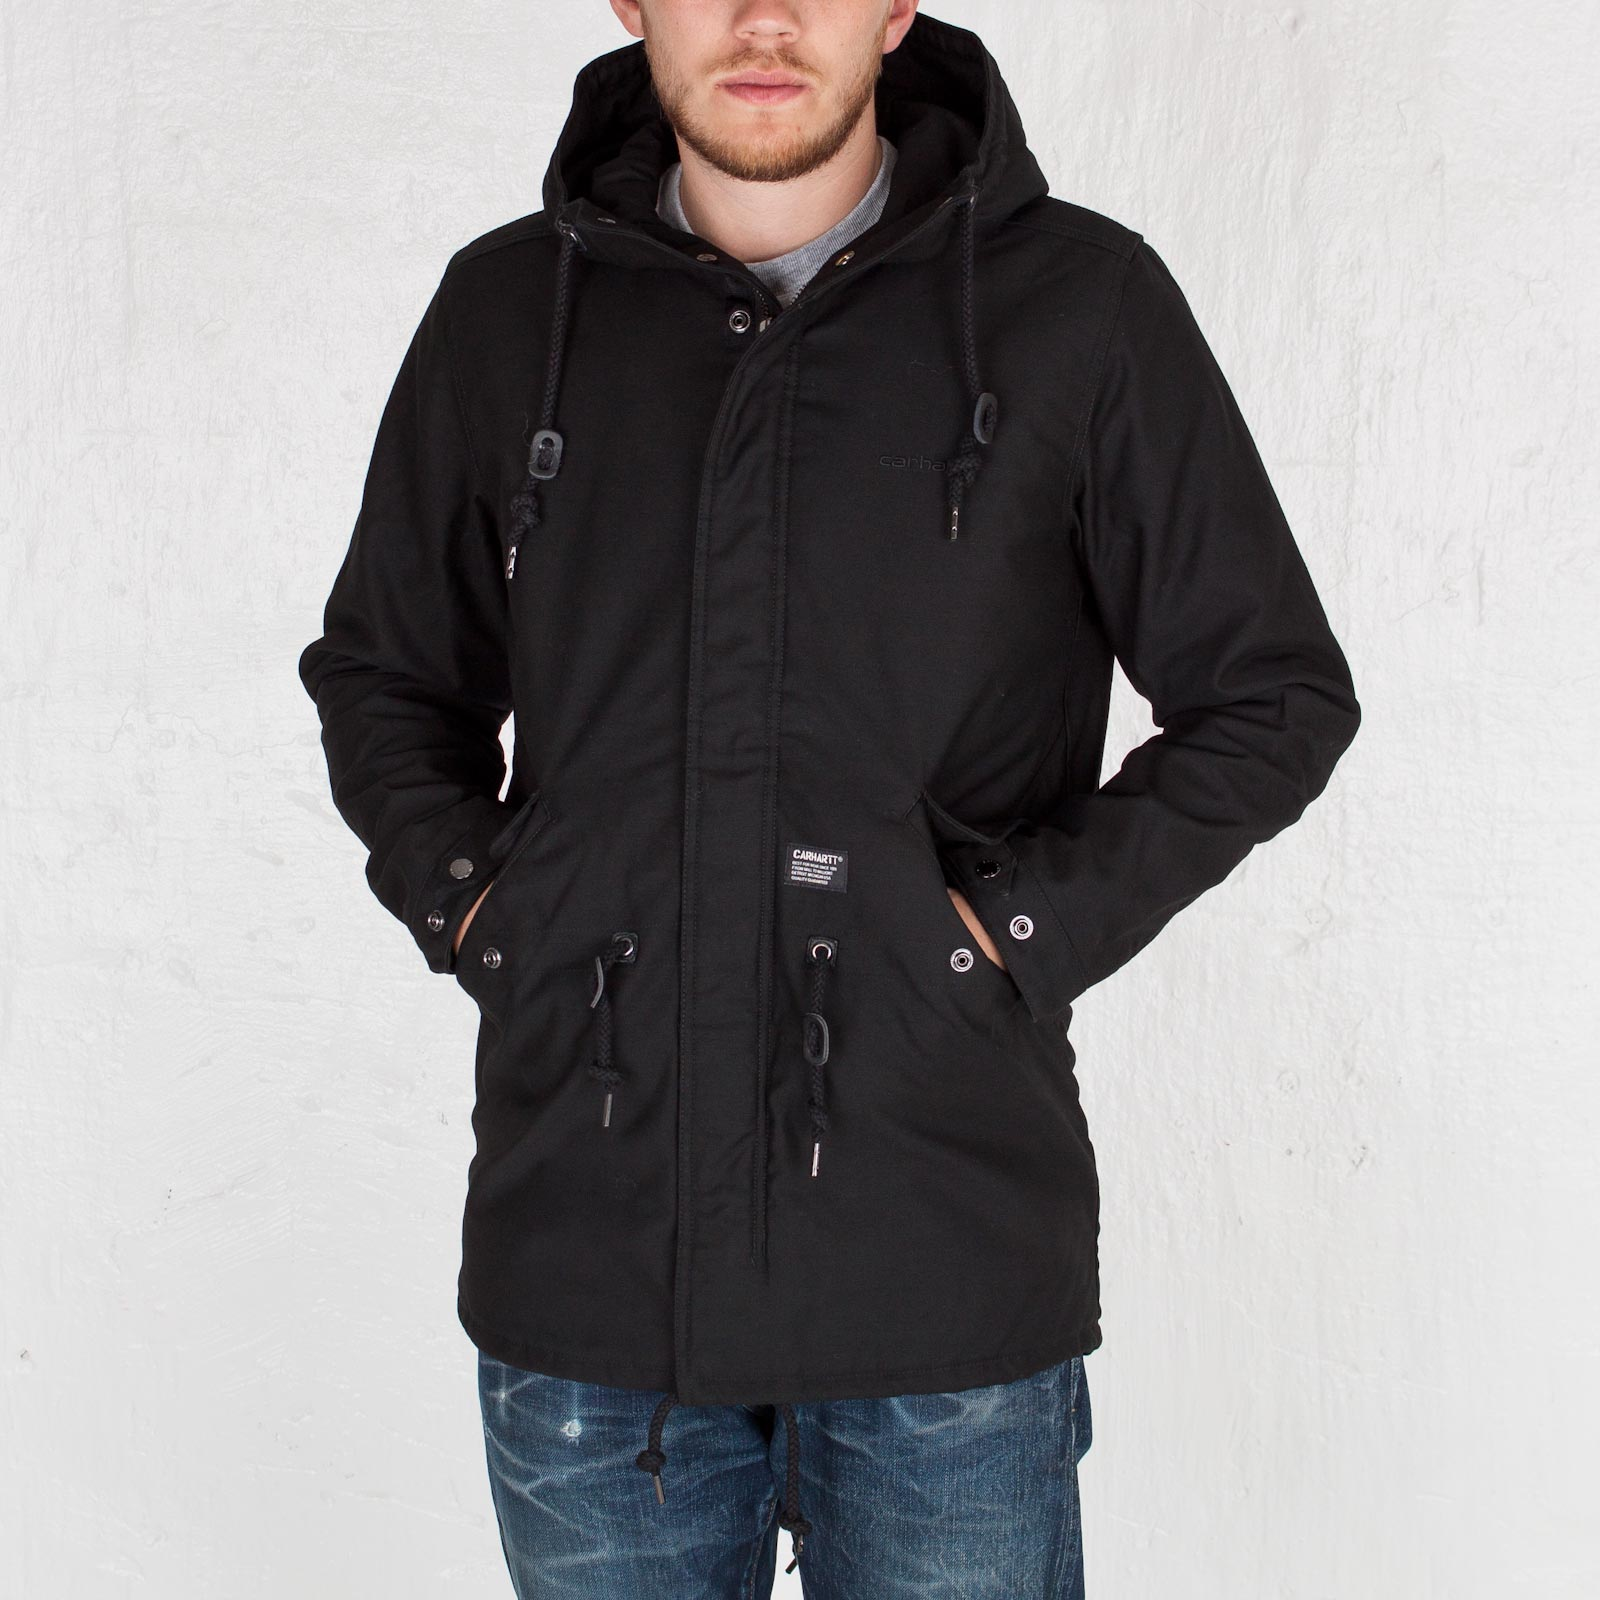 new product 24dae 482ee Carhartt WIP Clash Parka - I013606.89.00.03 - Sneakersnstuff ...